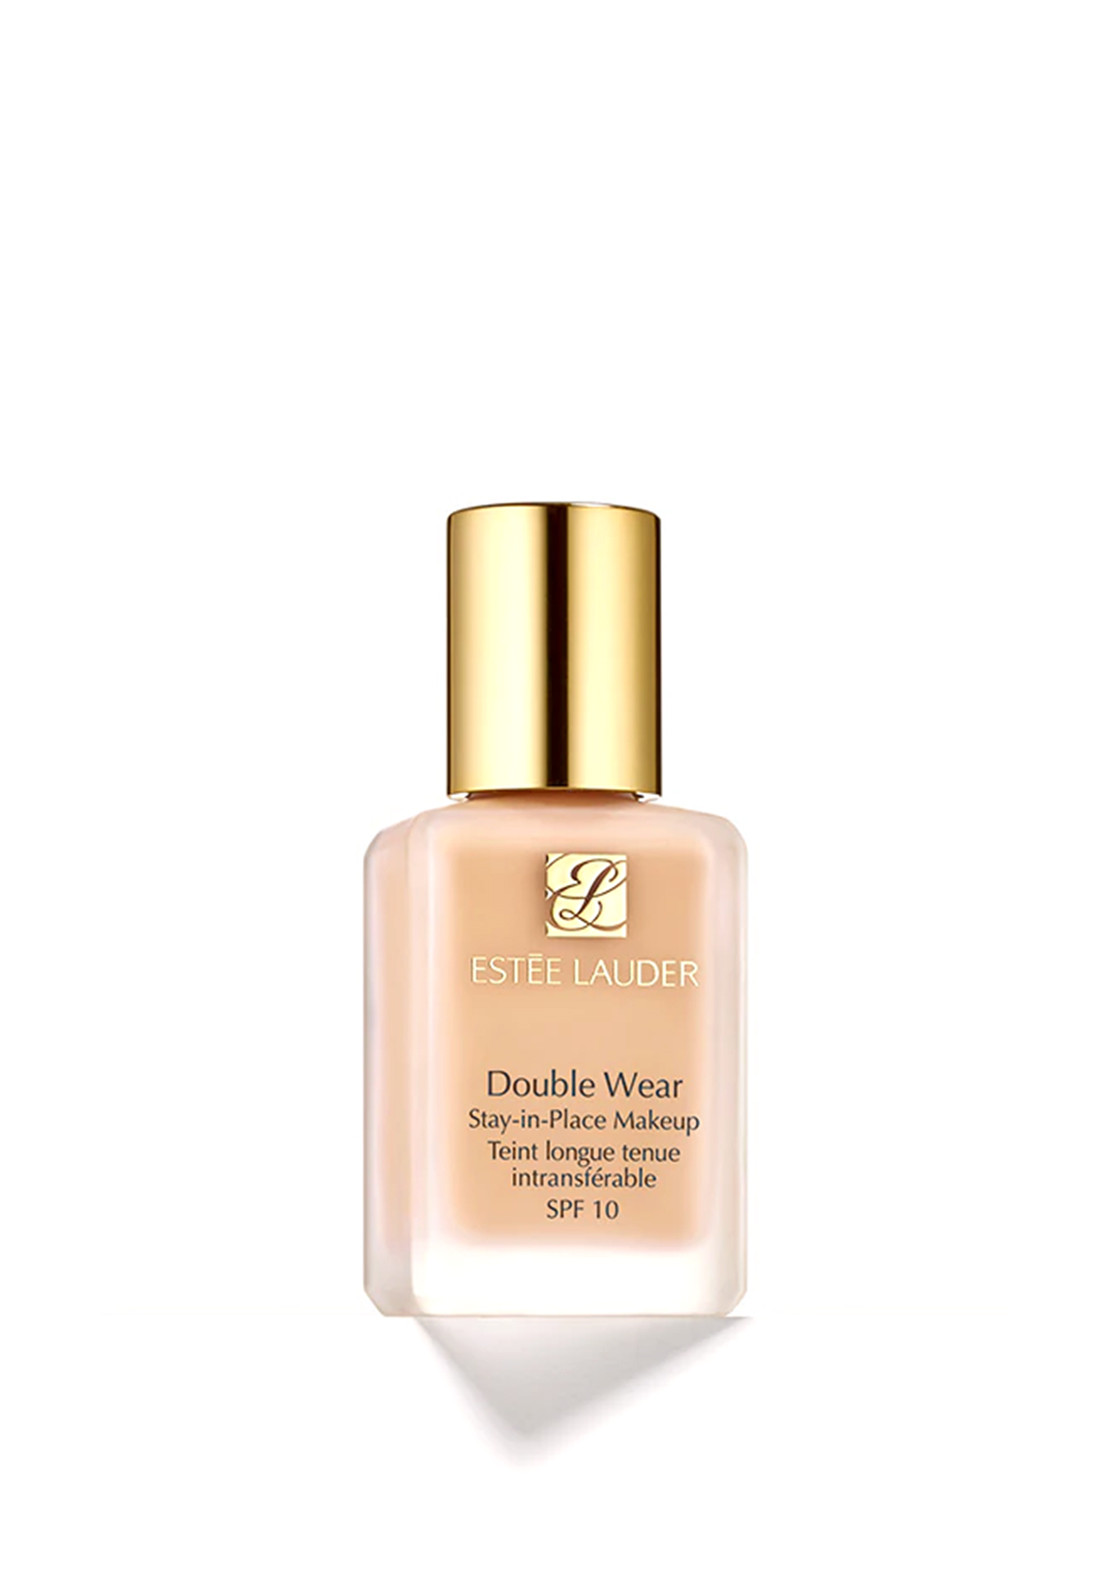 Estee Lauder Double Wear Foundation, Shell